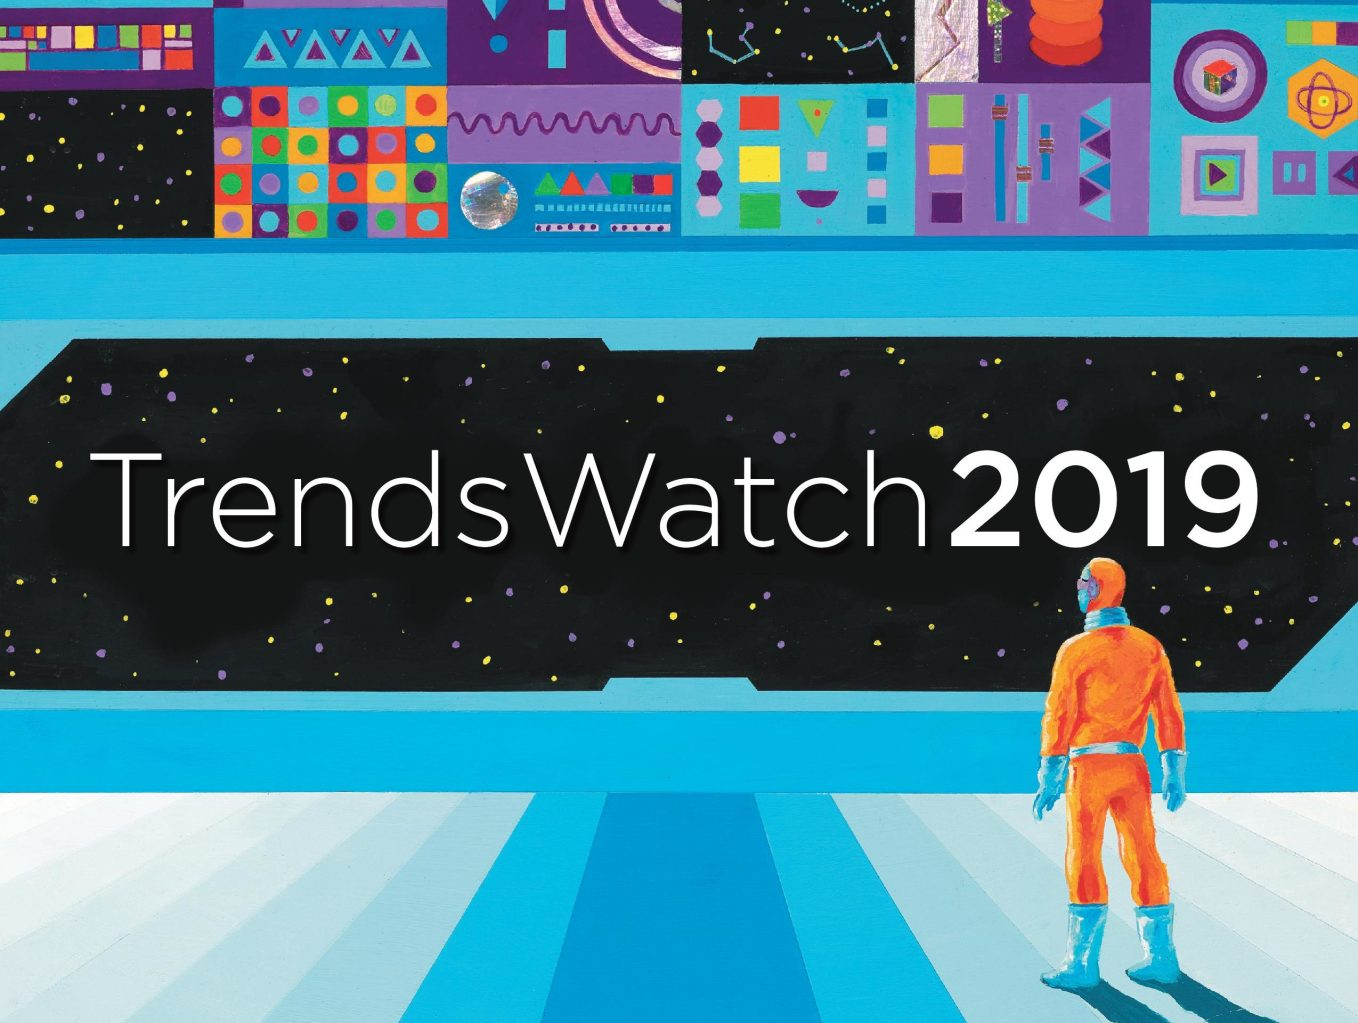 In the cover art for the 2019 edition of TrendsWatch, a figure in futuristic dress looks out into a view of space with a console consisting of abstract shapes above it.